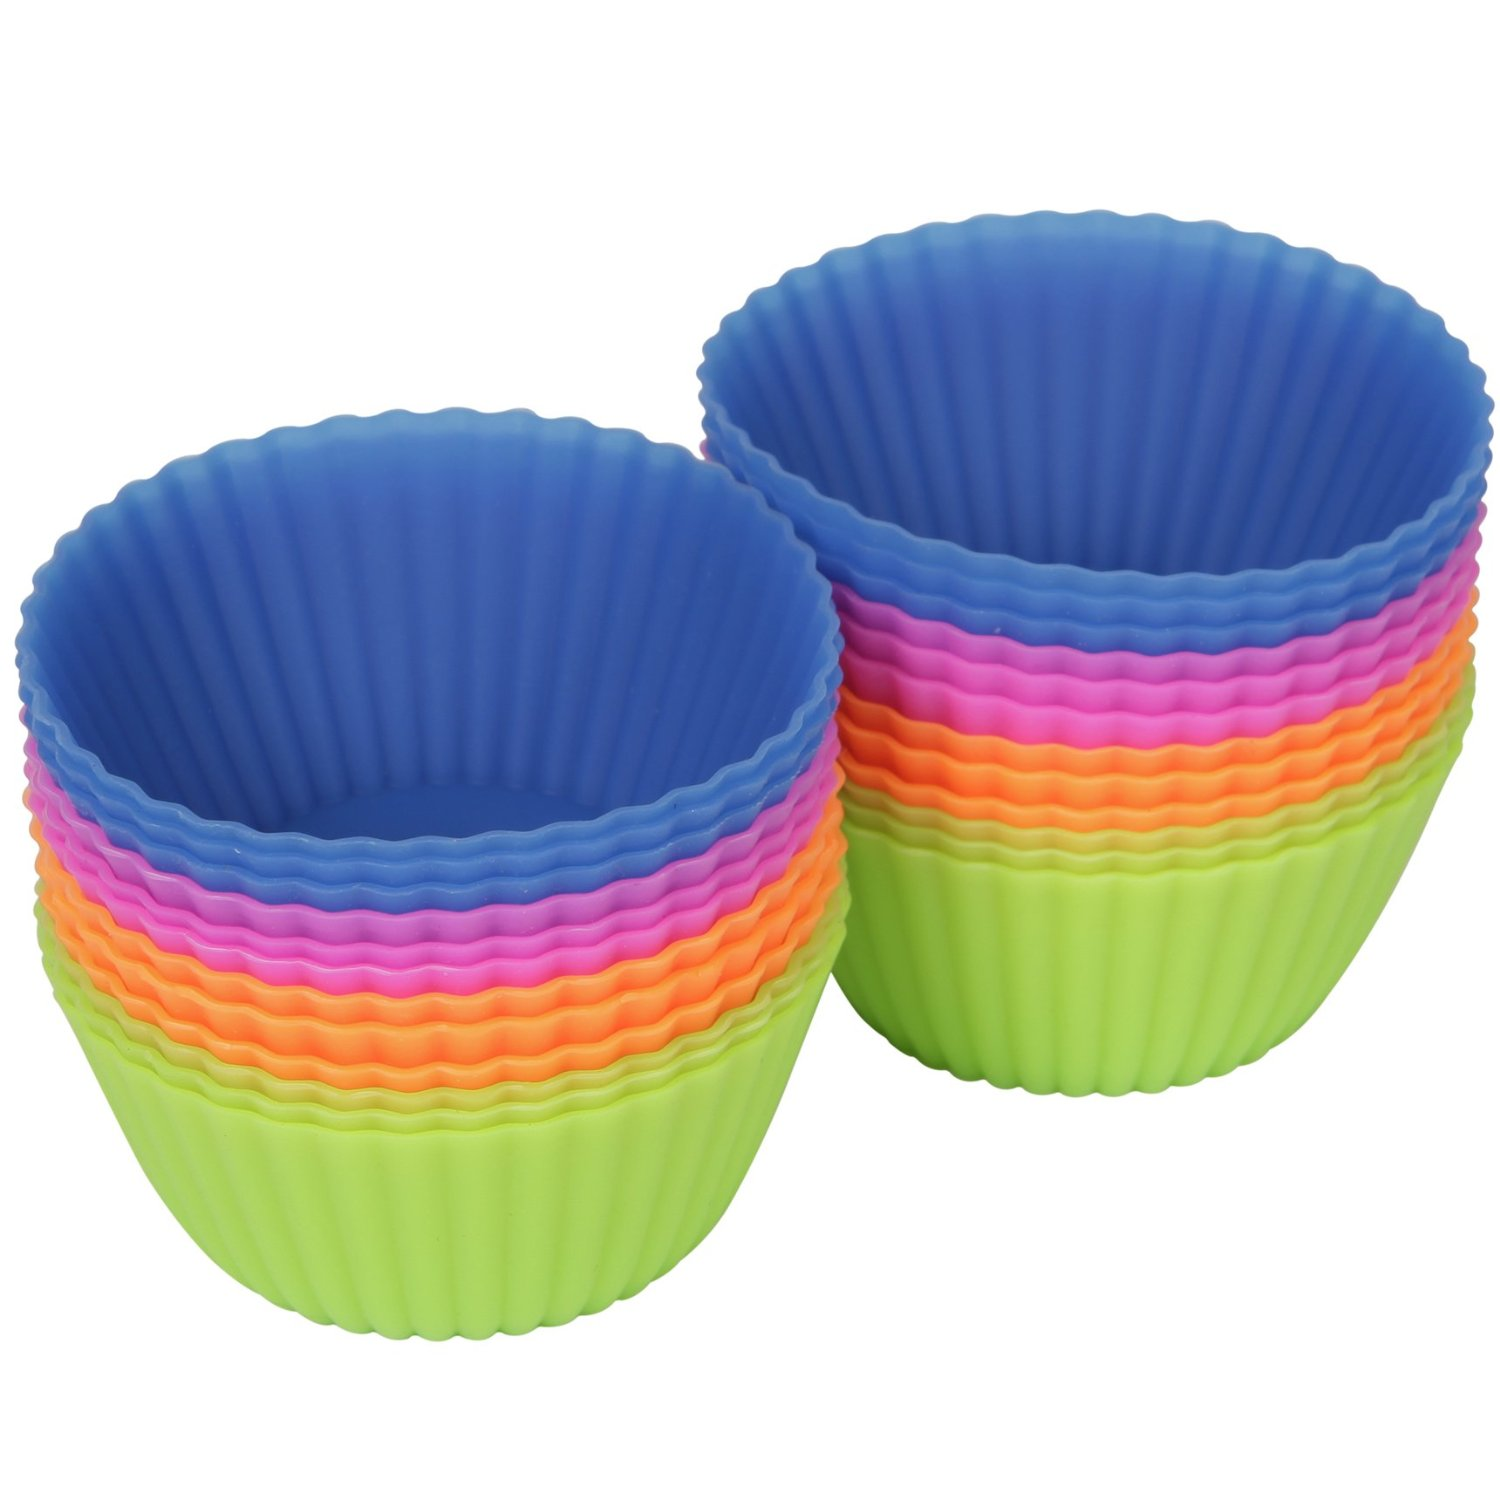 Silicone Baking Cups - So Much More Than Just Muffins!